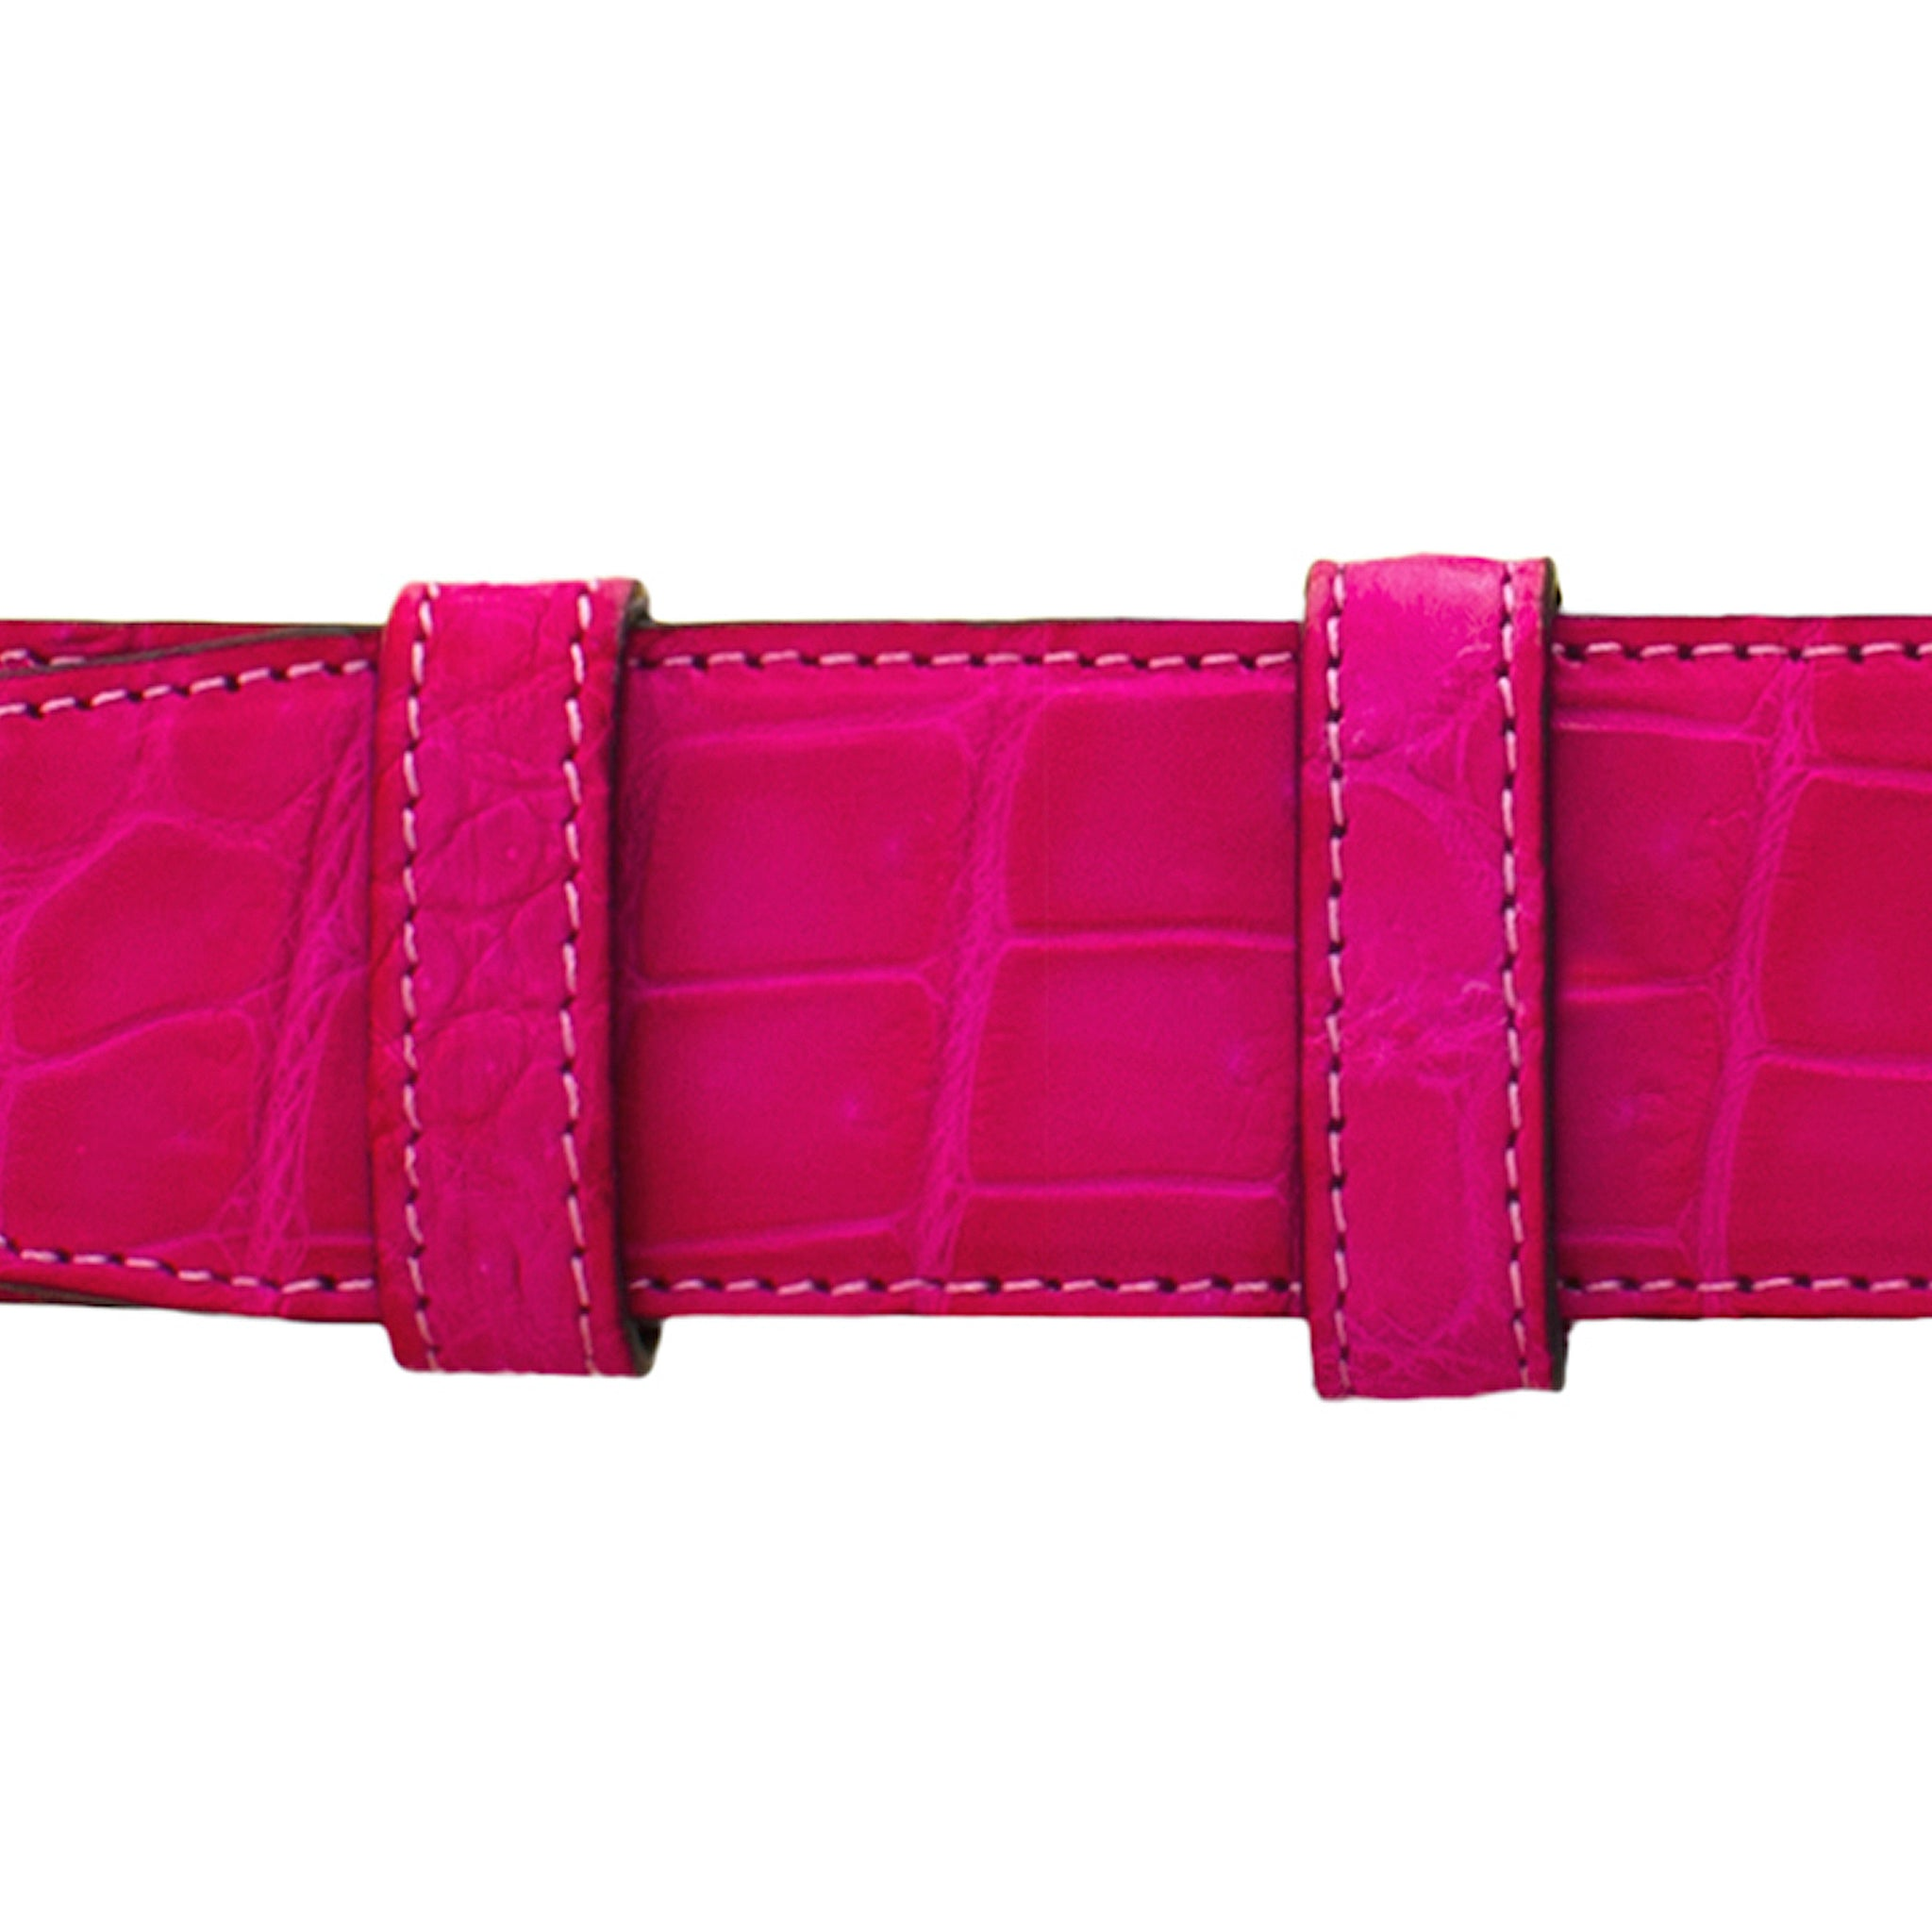 "1 1/4"" Fuchsia Seasonal Belt with Derby Cocktail Buckle in Polished Nickel"